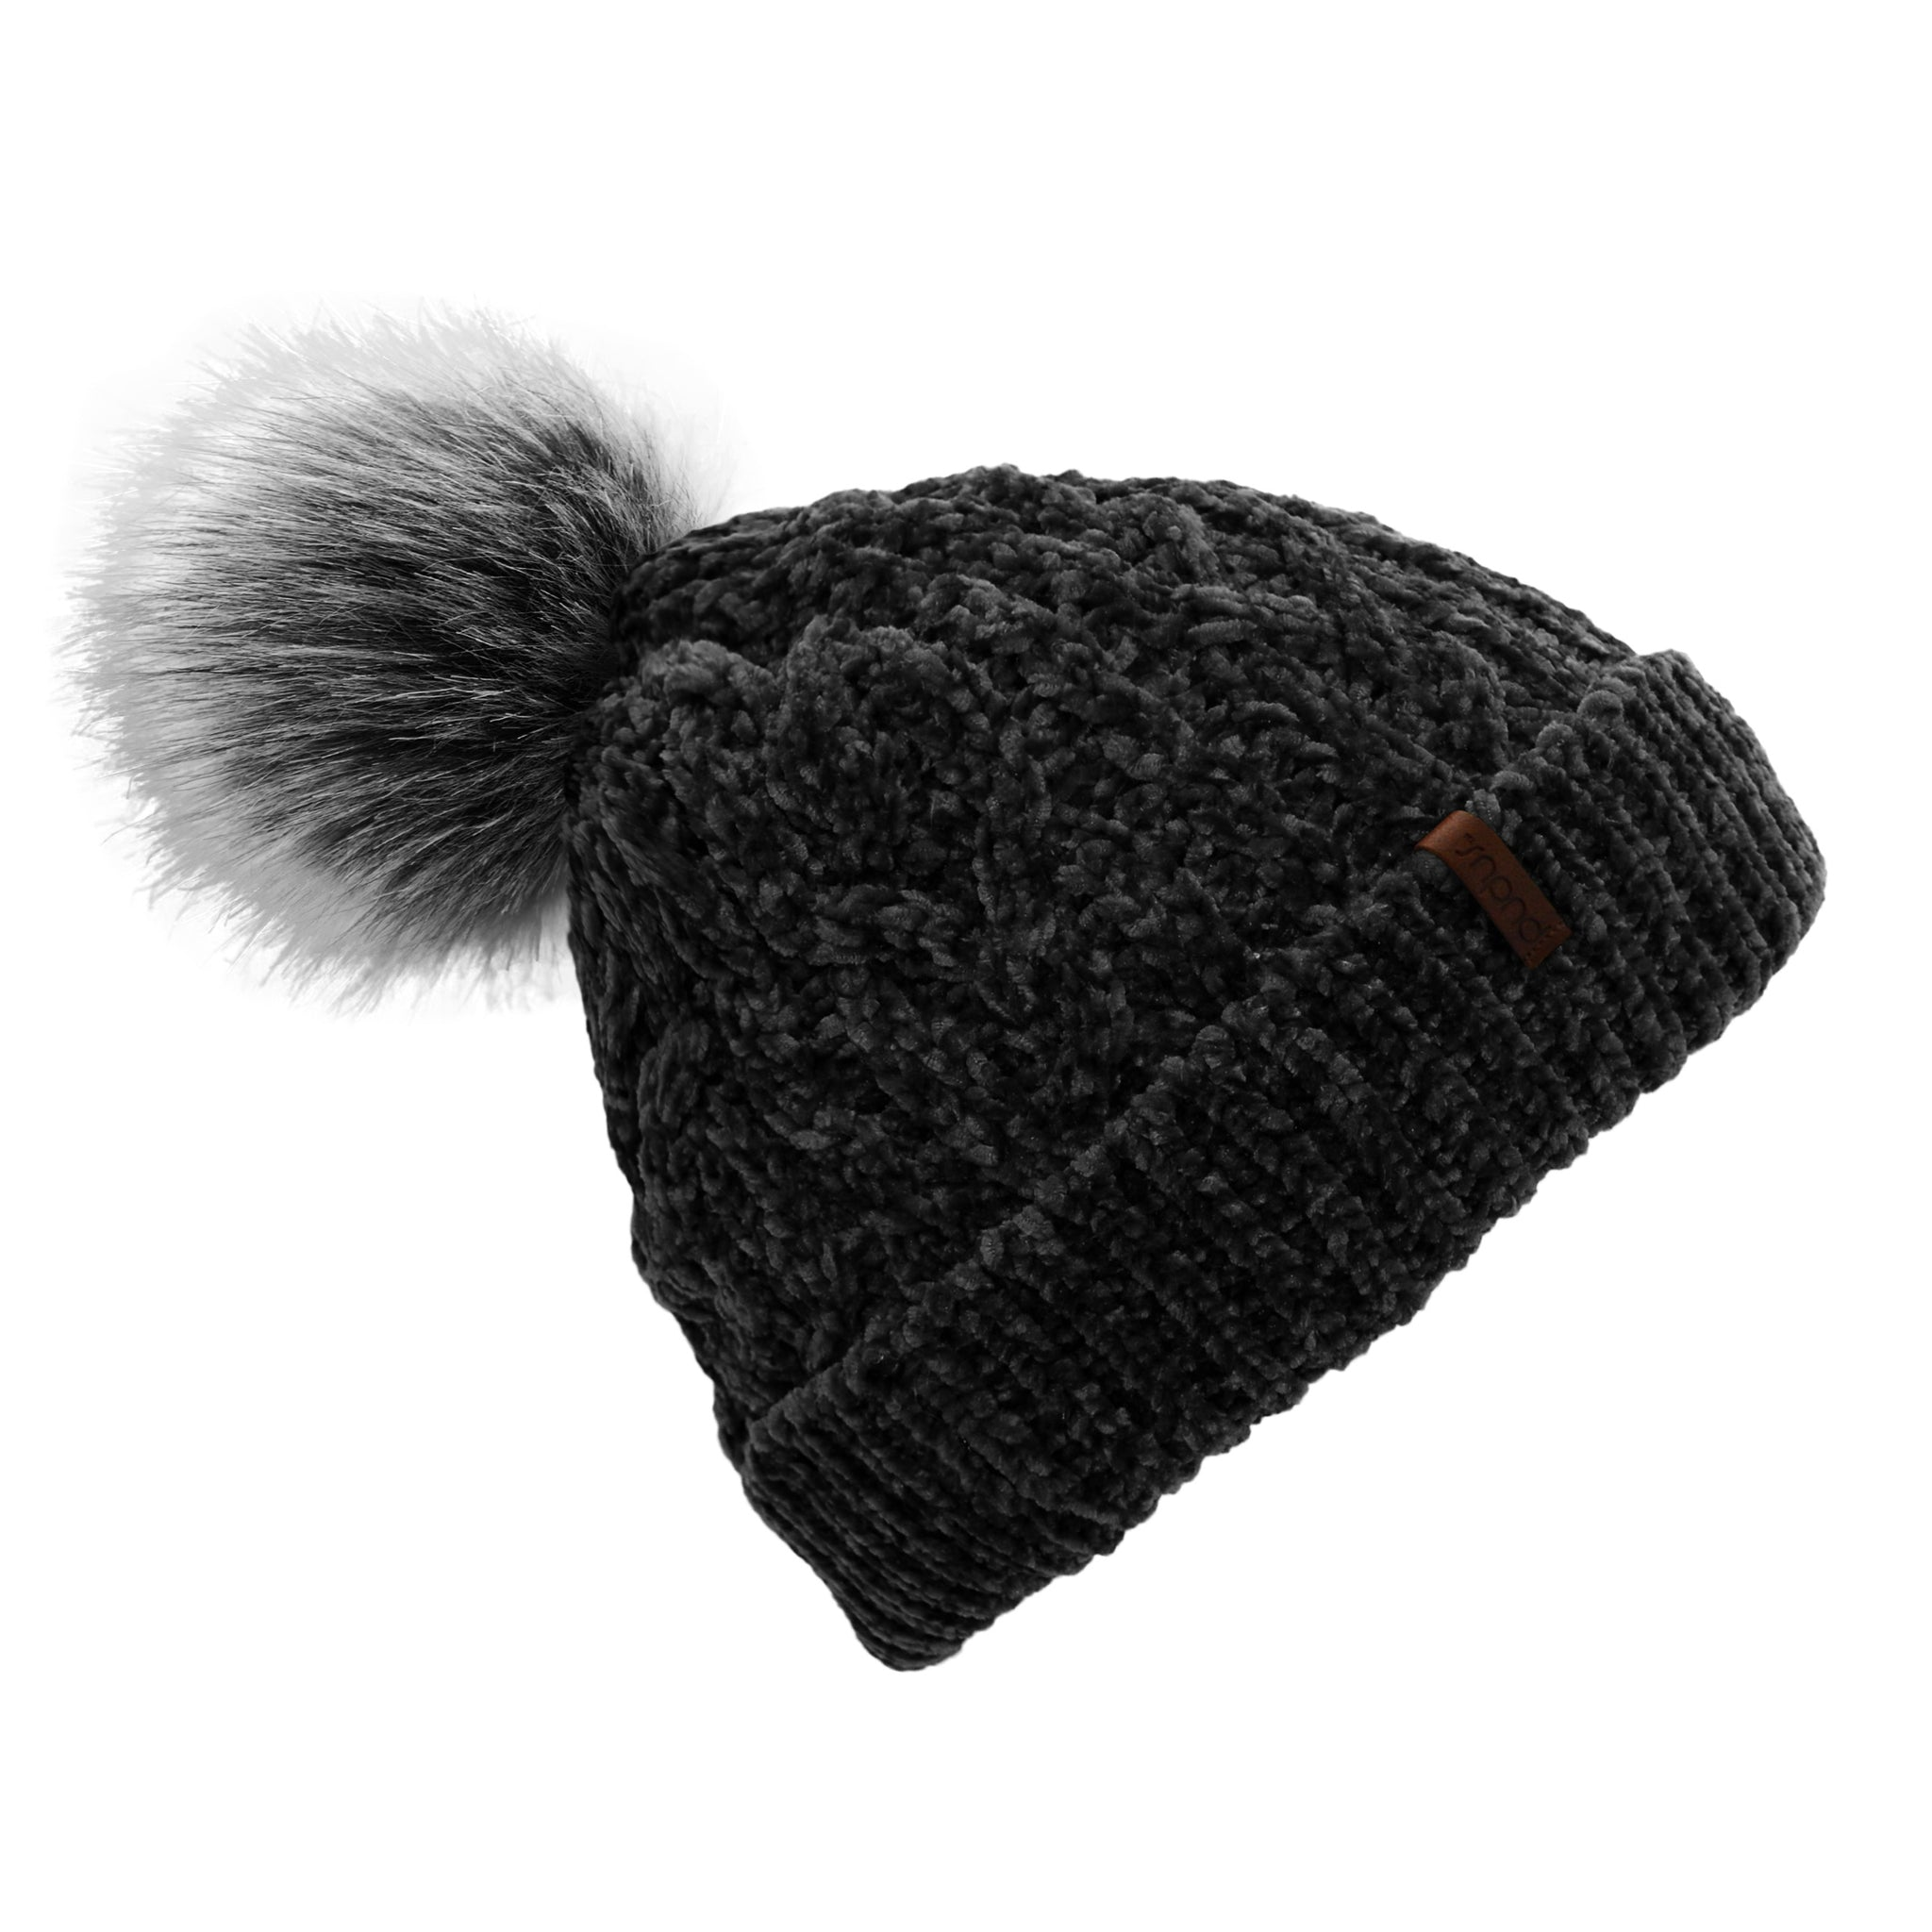 Chenille Knit Beanie Hat | Black